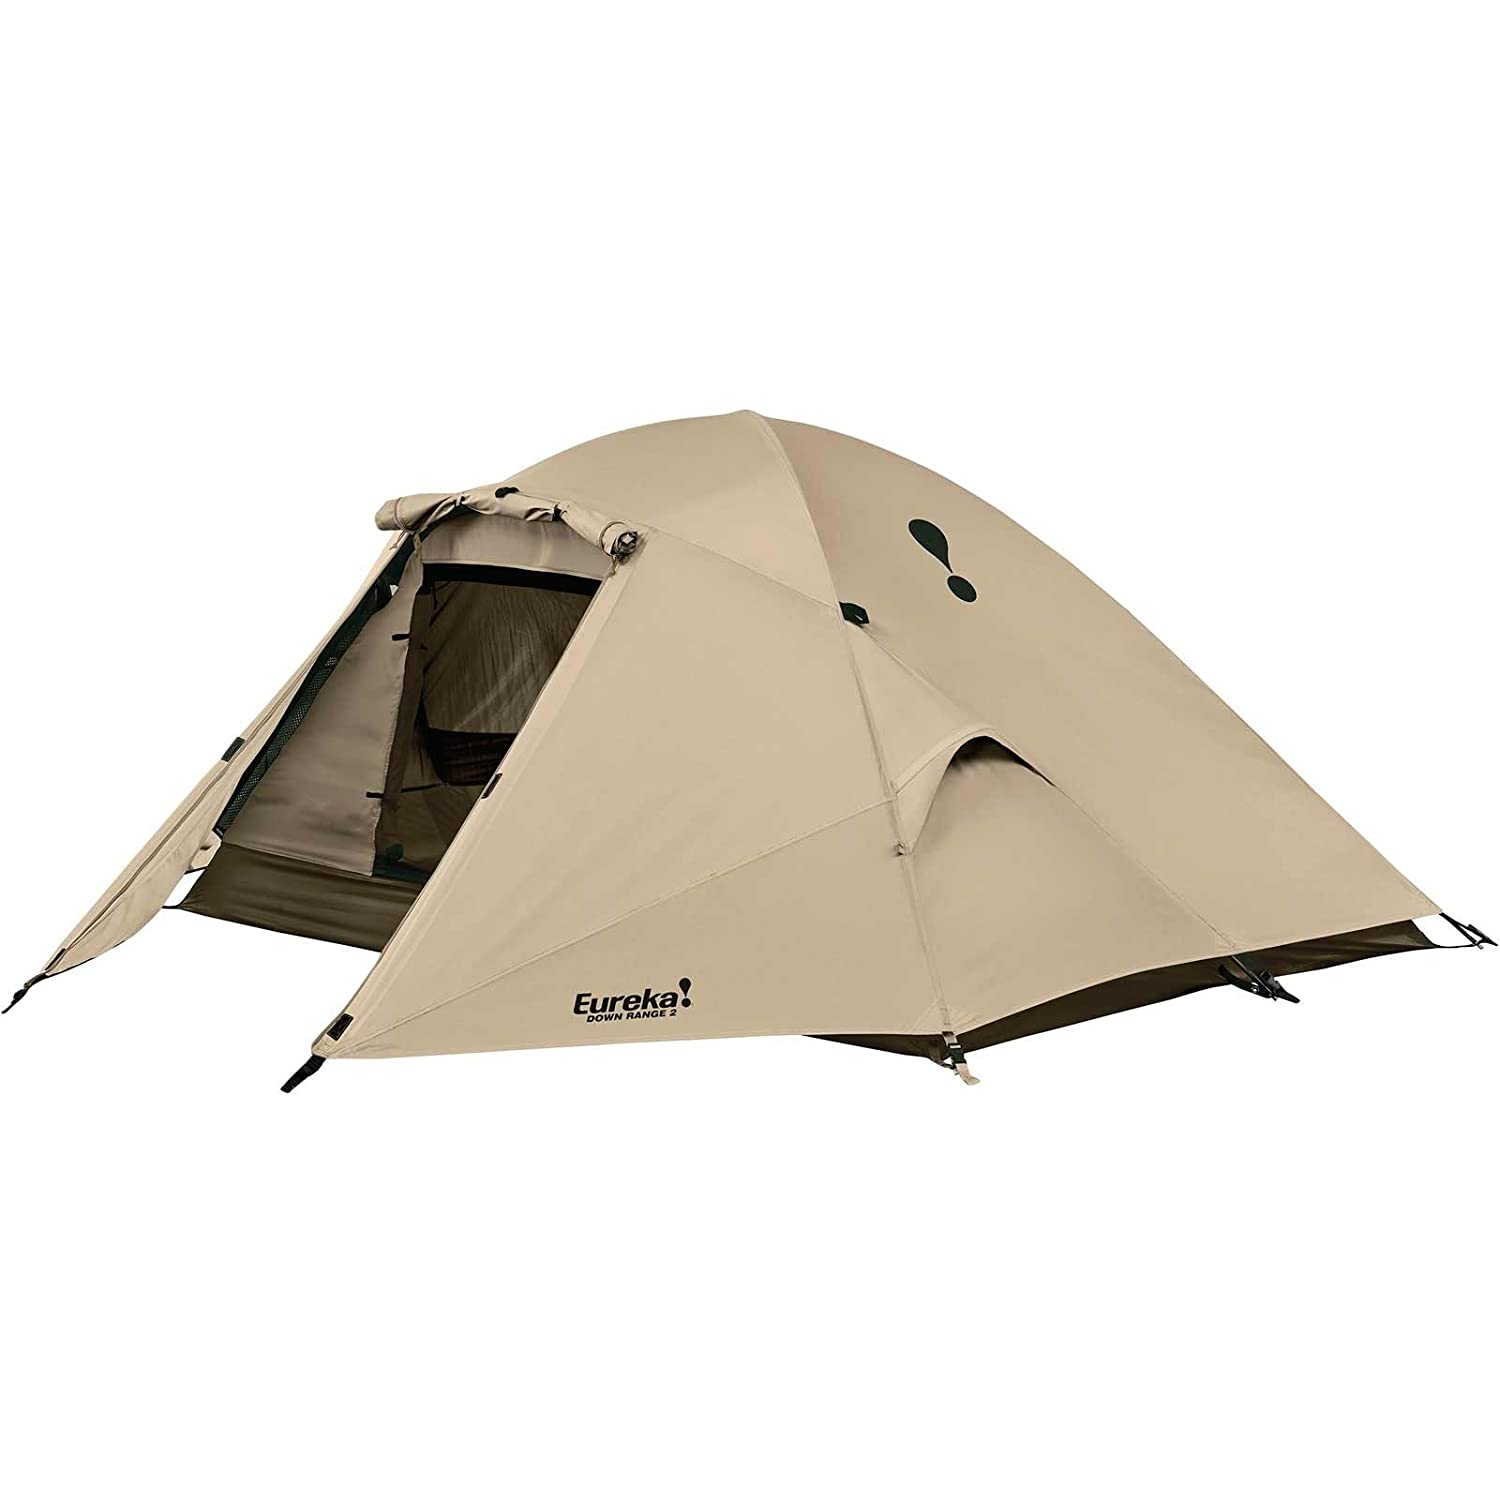 Eureka Down Range 2 - 2 Person Tactical Tent  sc 1 st  Amazon.com & Amazon.com : USMC Marine Combat 2 man Tent : Sports u0026 Outdoors